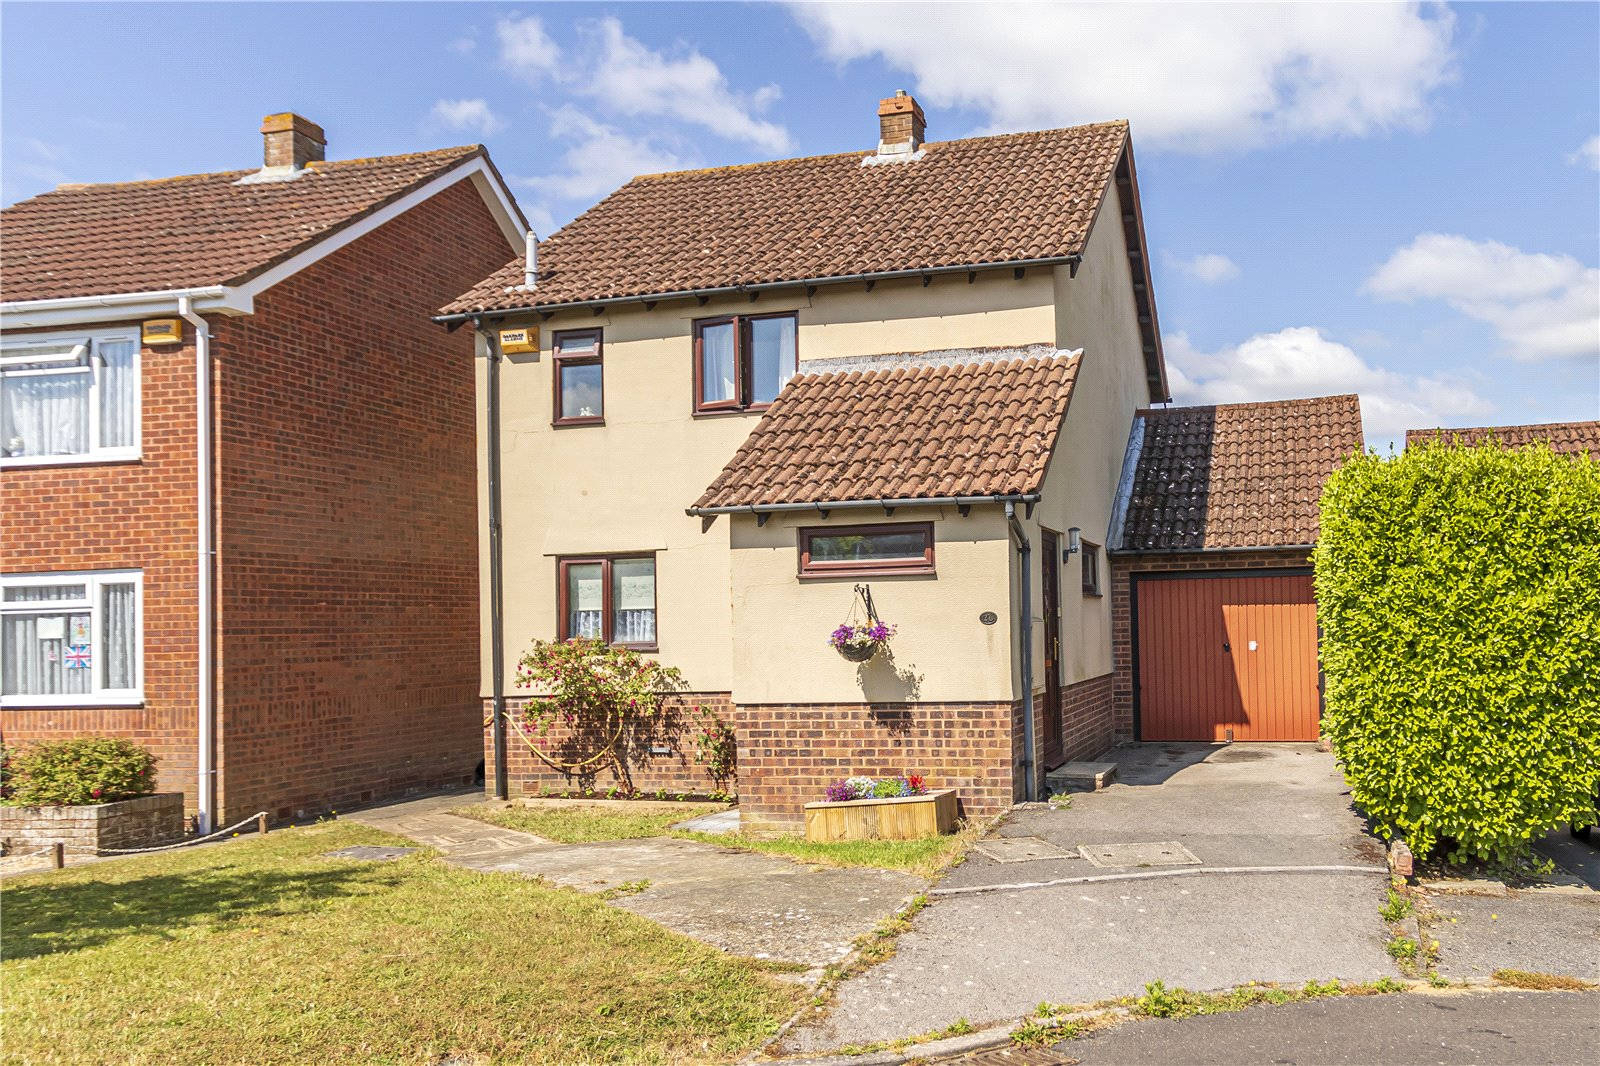 3 bed house for sale in Plantagenet Crescent, Bournemouth 0